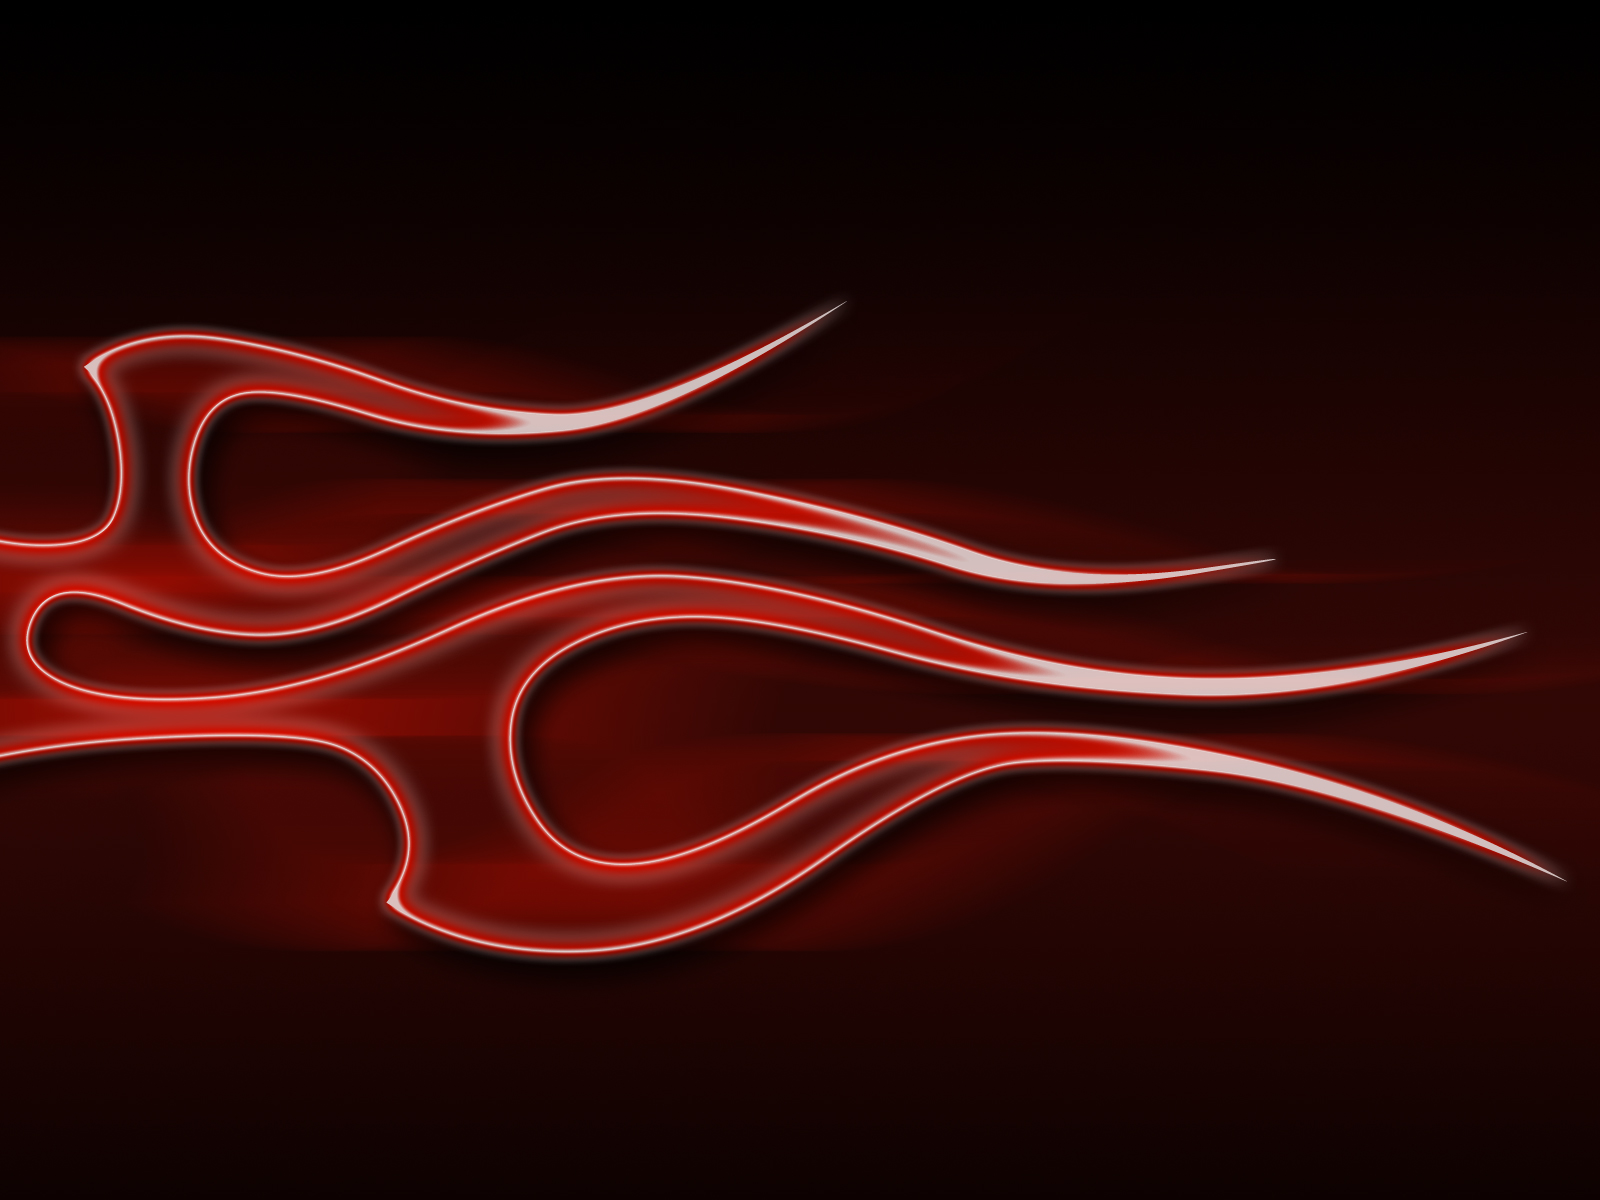 Flames - Electric Red by jbensch